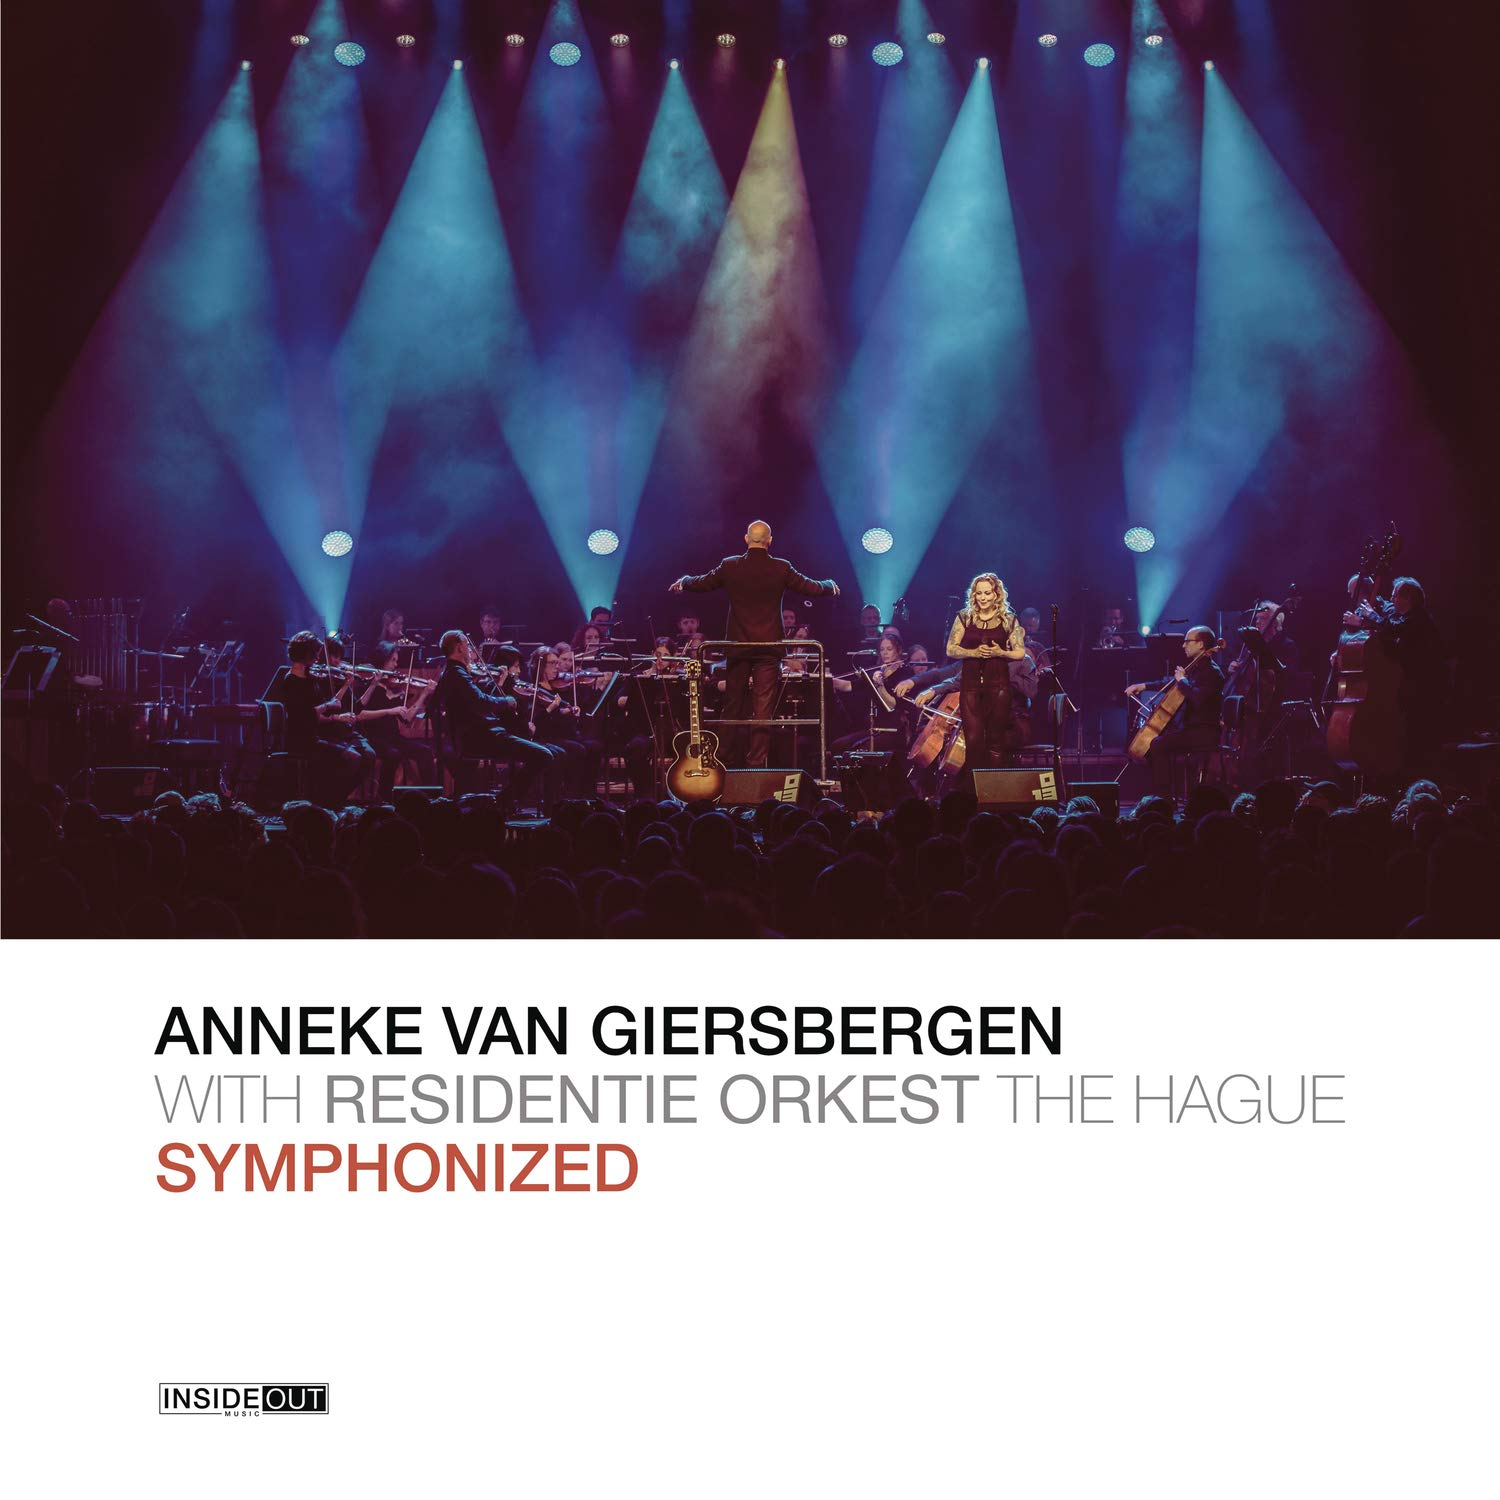 CD : Anneke van Giersbergen - Symphonized (Limited Edition, Digipack Packaging, Germany - Import)